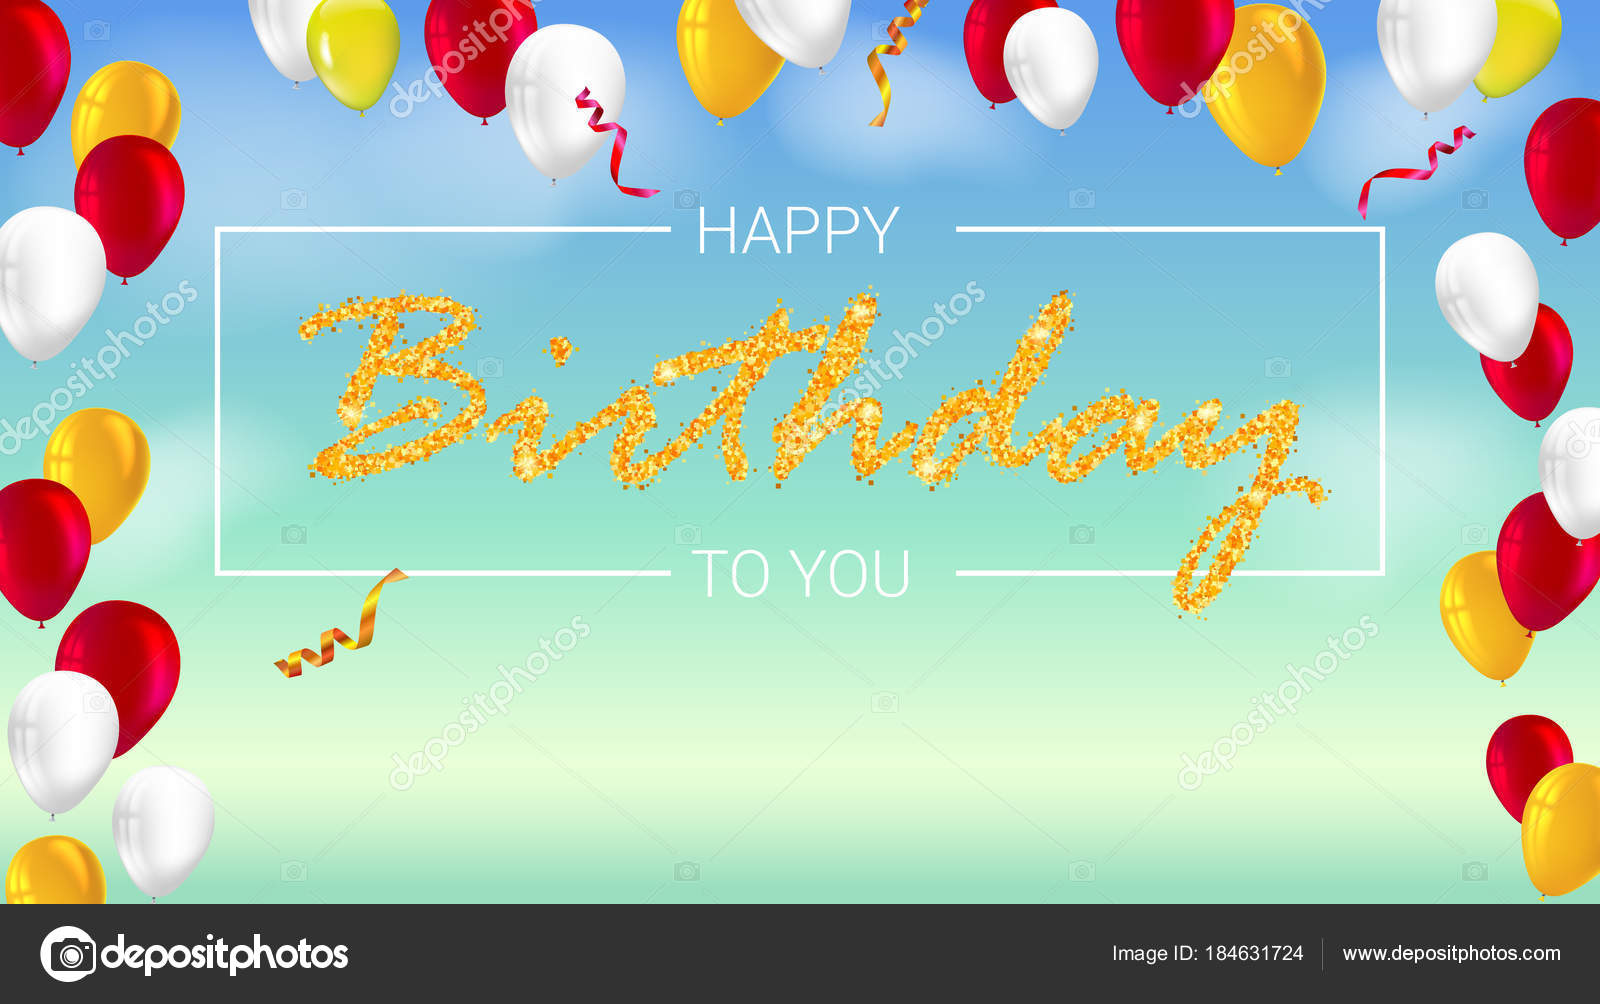 Happy birthday poster with shiny colored balloons with golden happy birthday poster with shiny colored balloons with golden glitter lettering and frame vector 3d illustration template for banner poster or greetings m4hsunfo